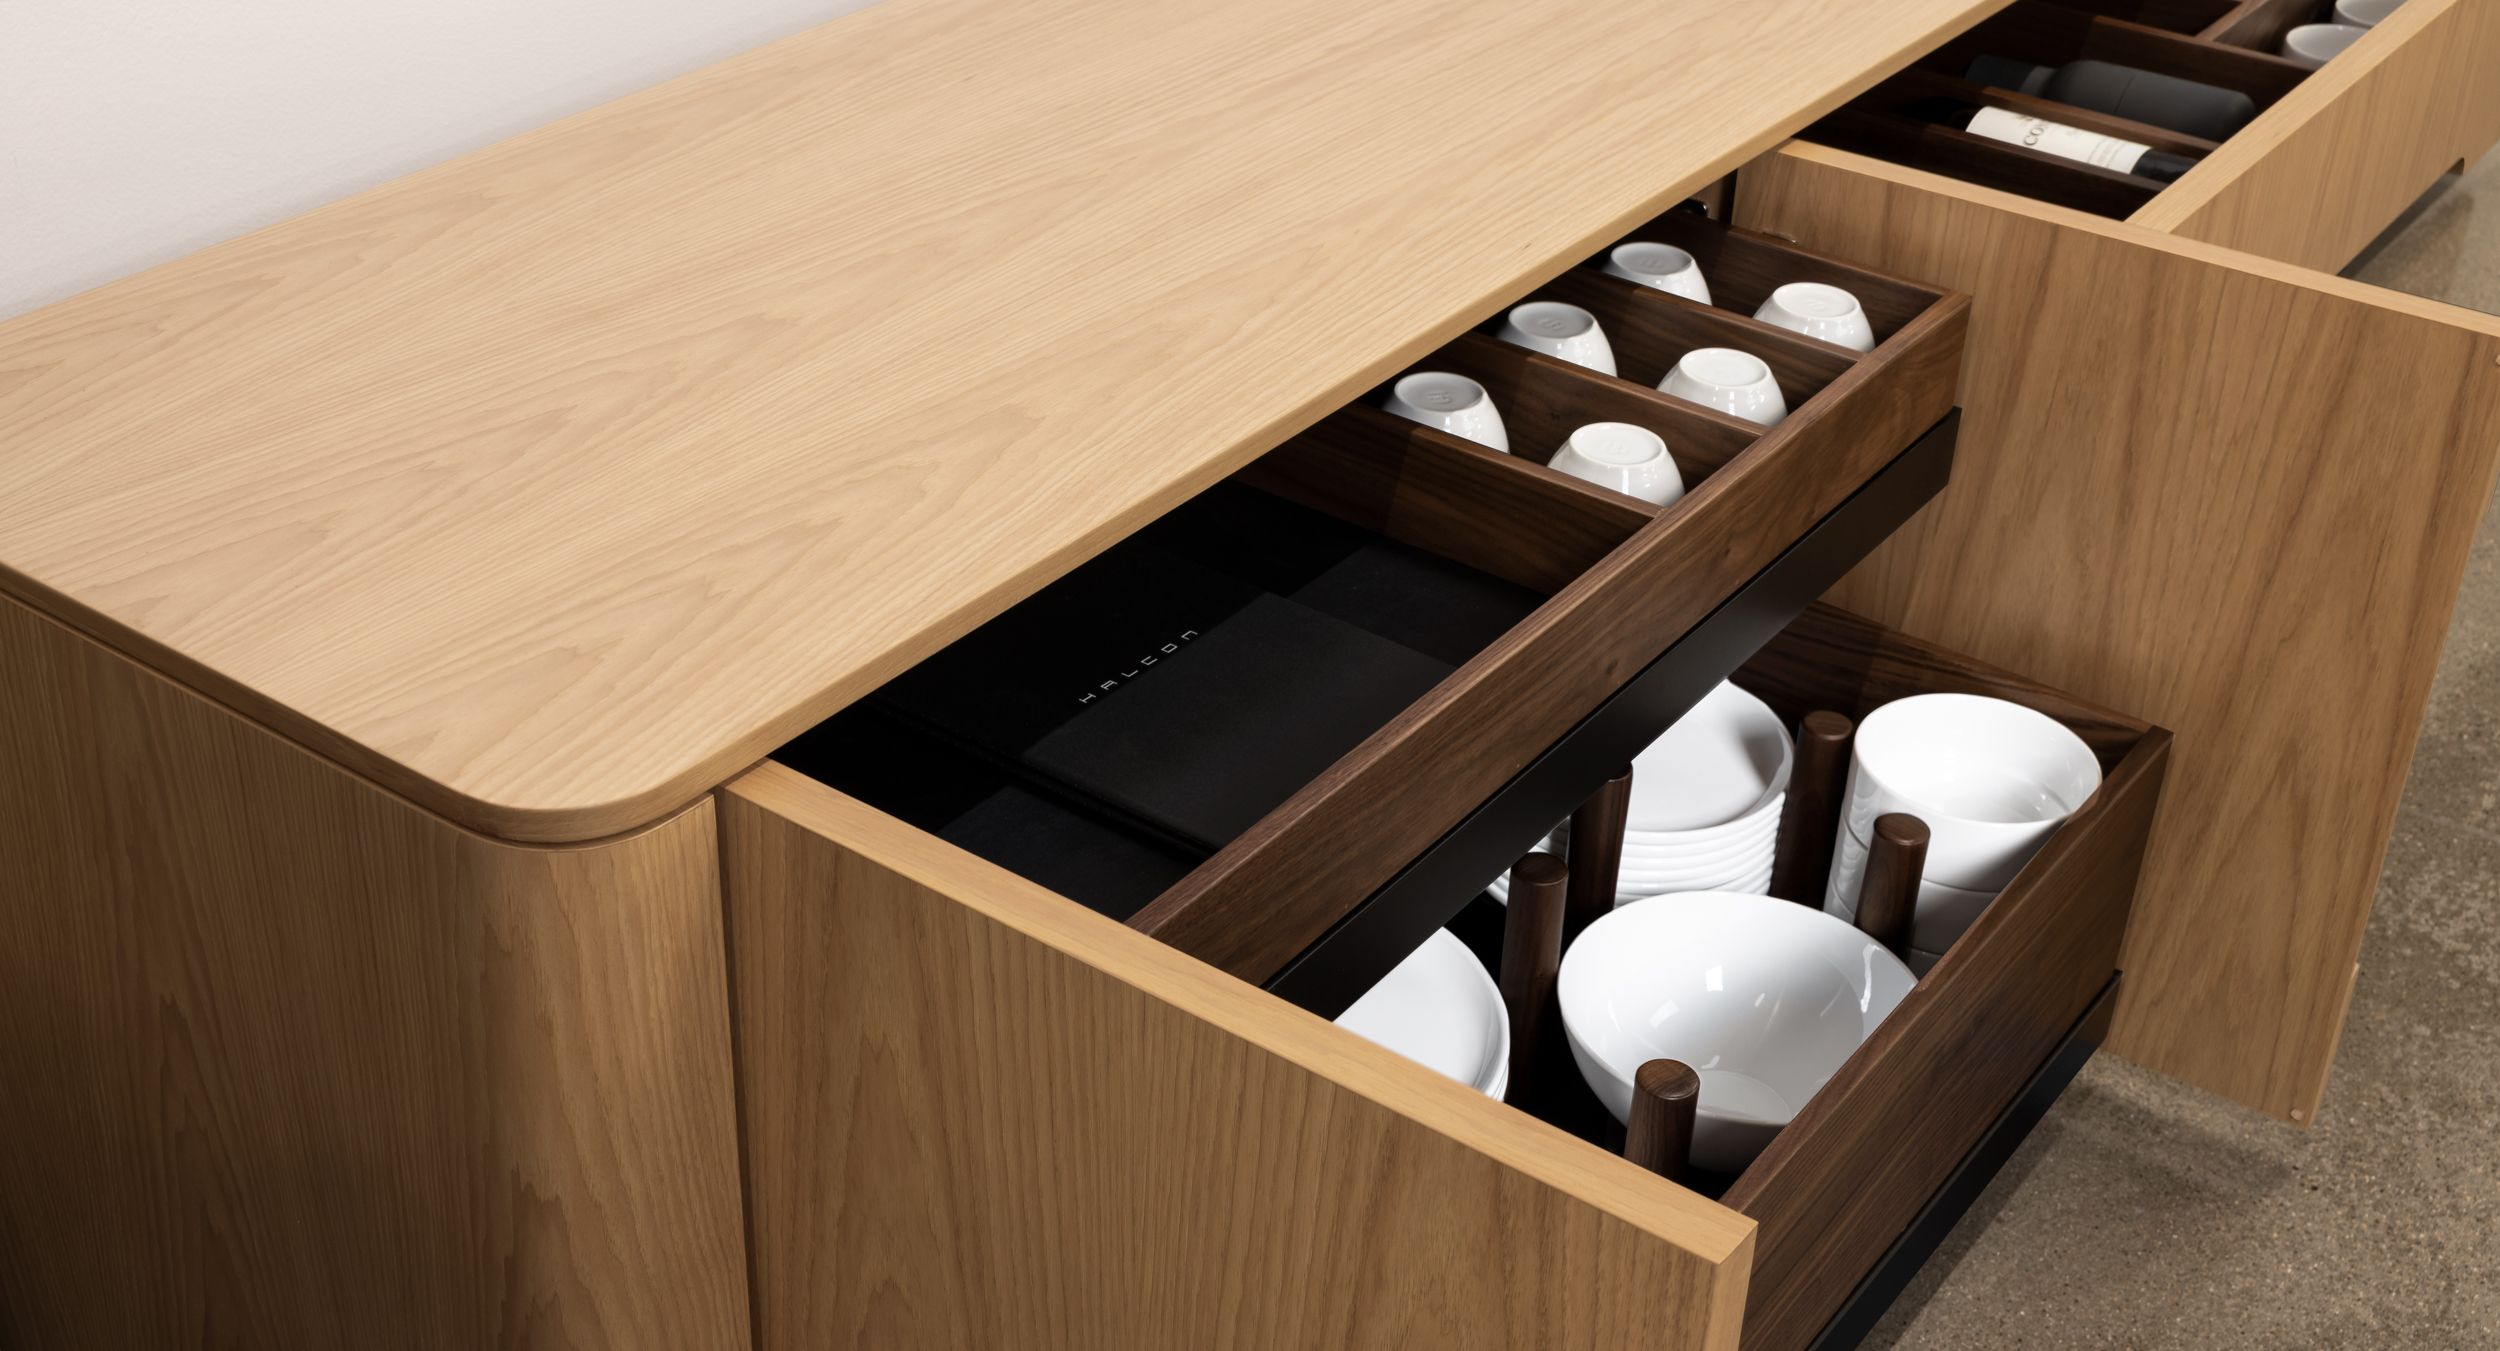 Thoughtful modules accommodate glassware, cutlery, refrigeration, and more.  Solid wood storage trays are easily removed for fast and convenient service.